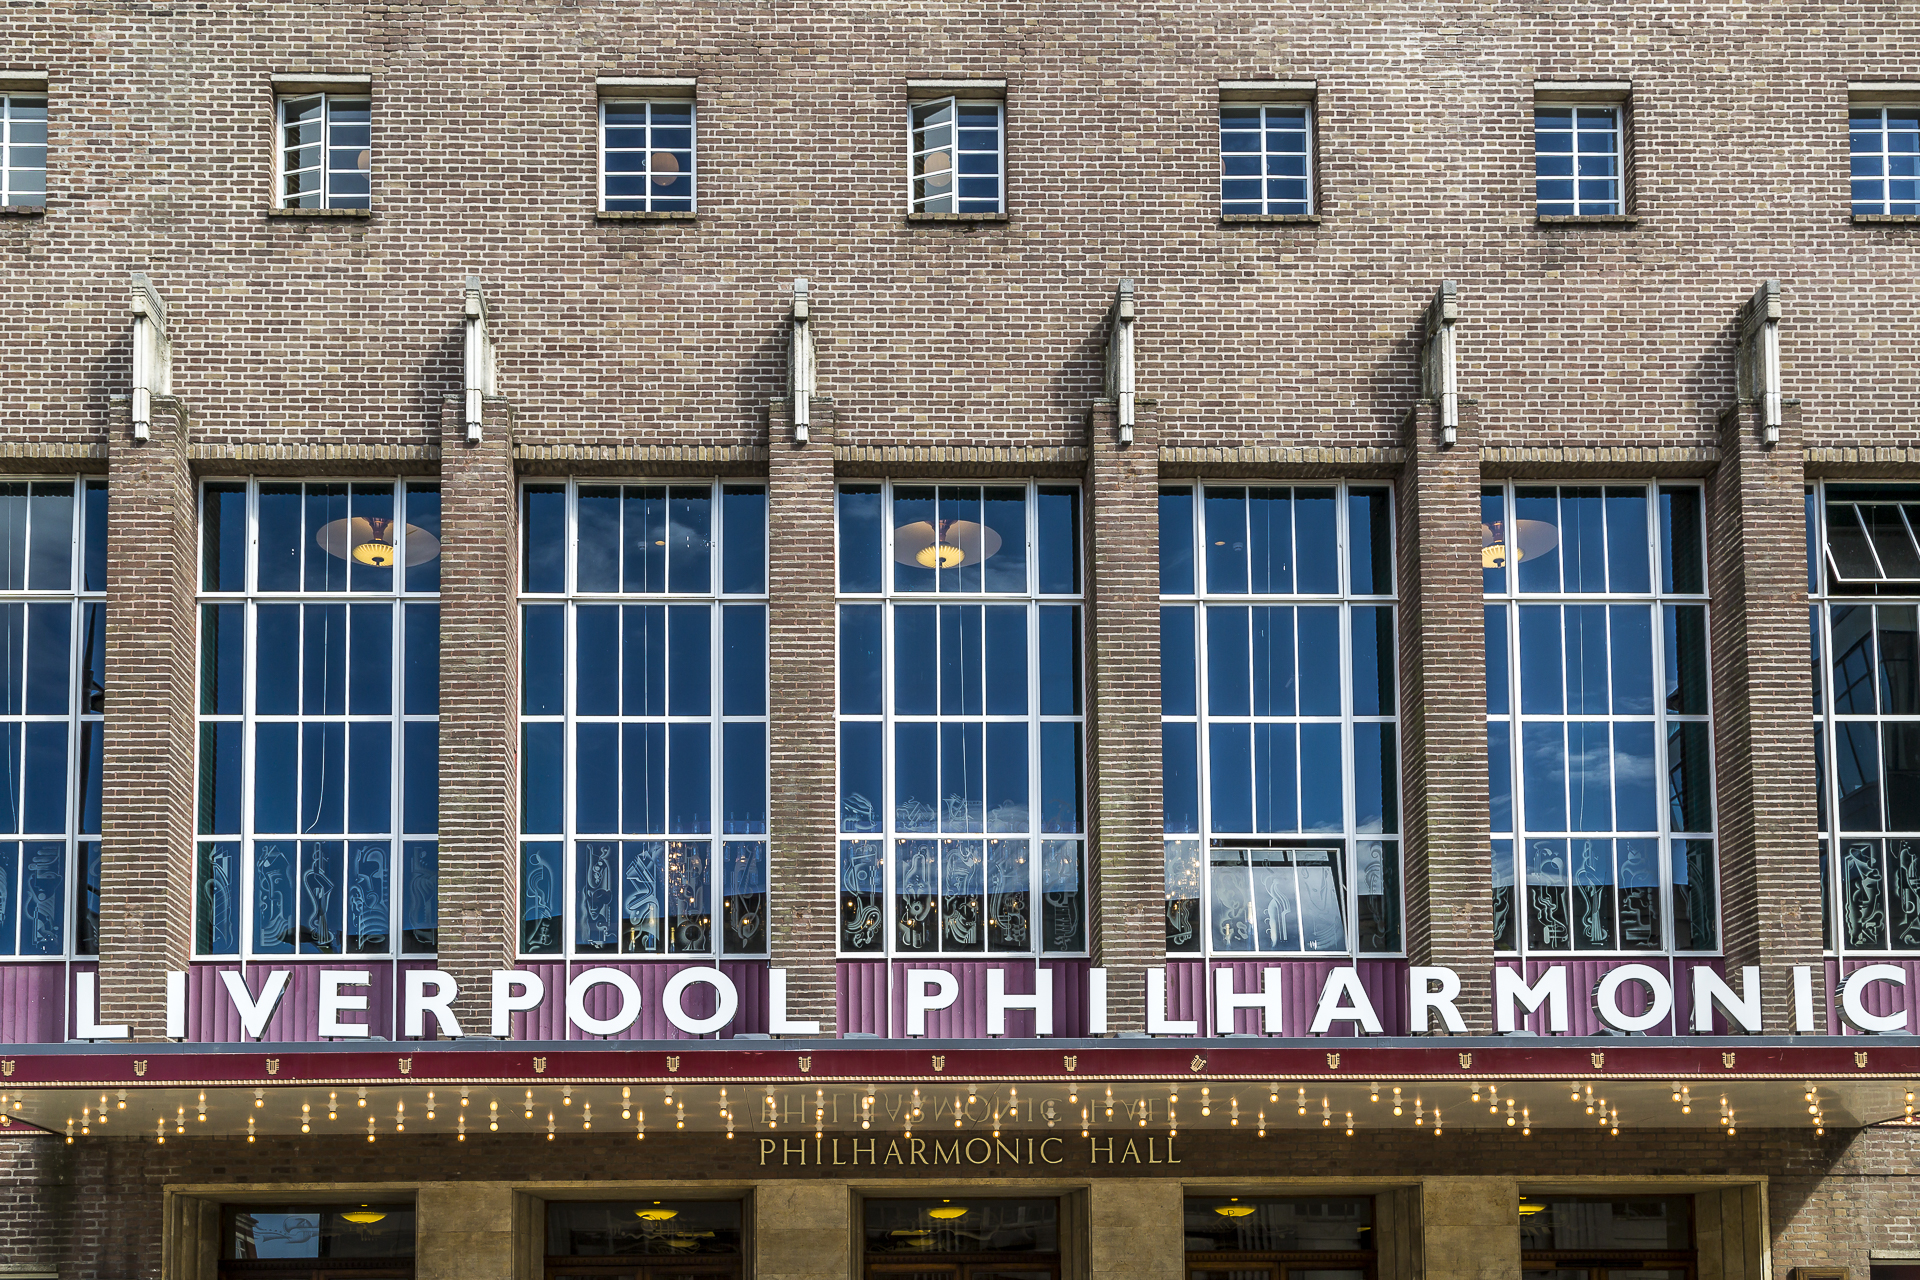 Philharmonic-Hall-Liverpool